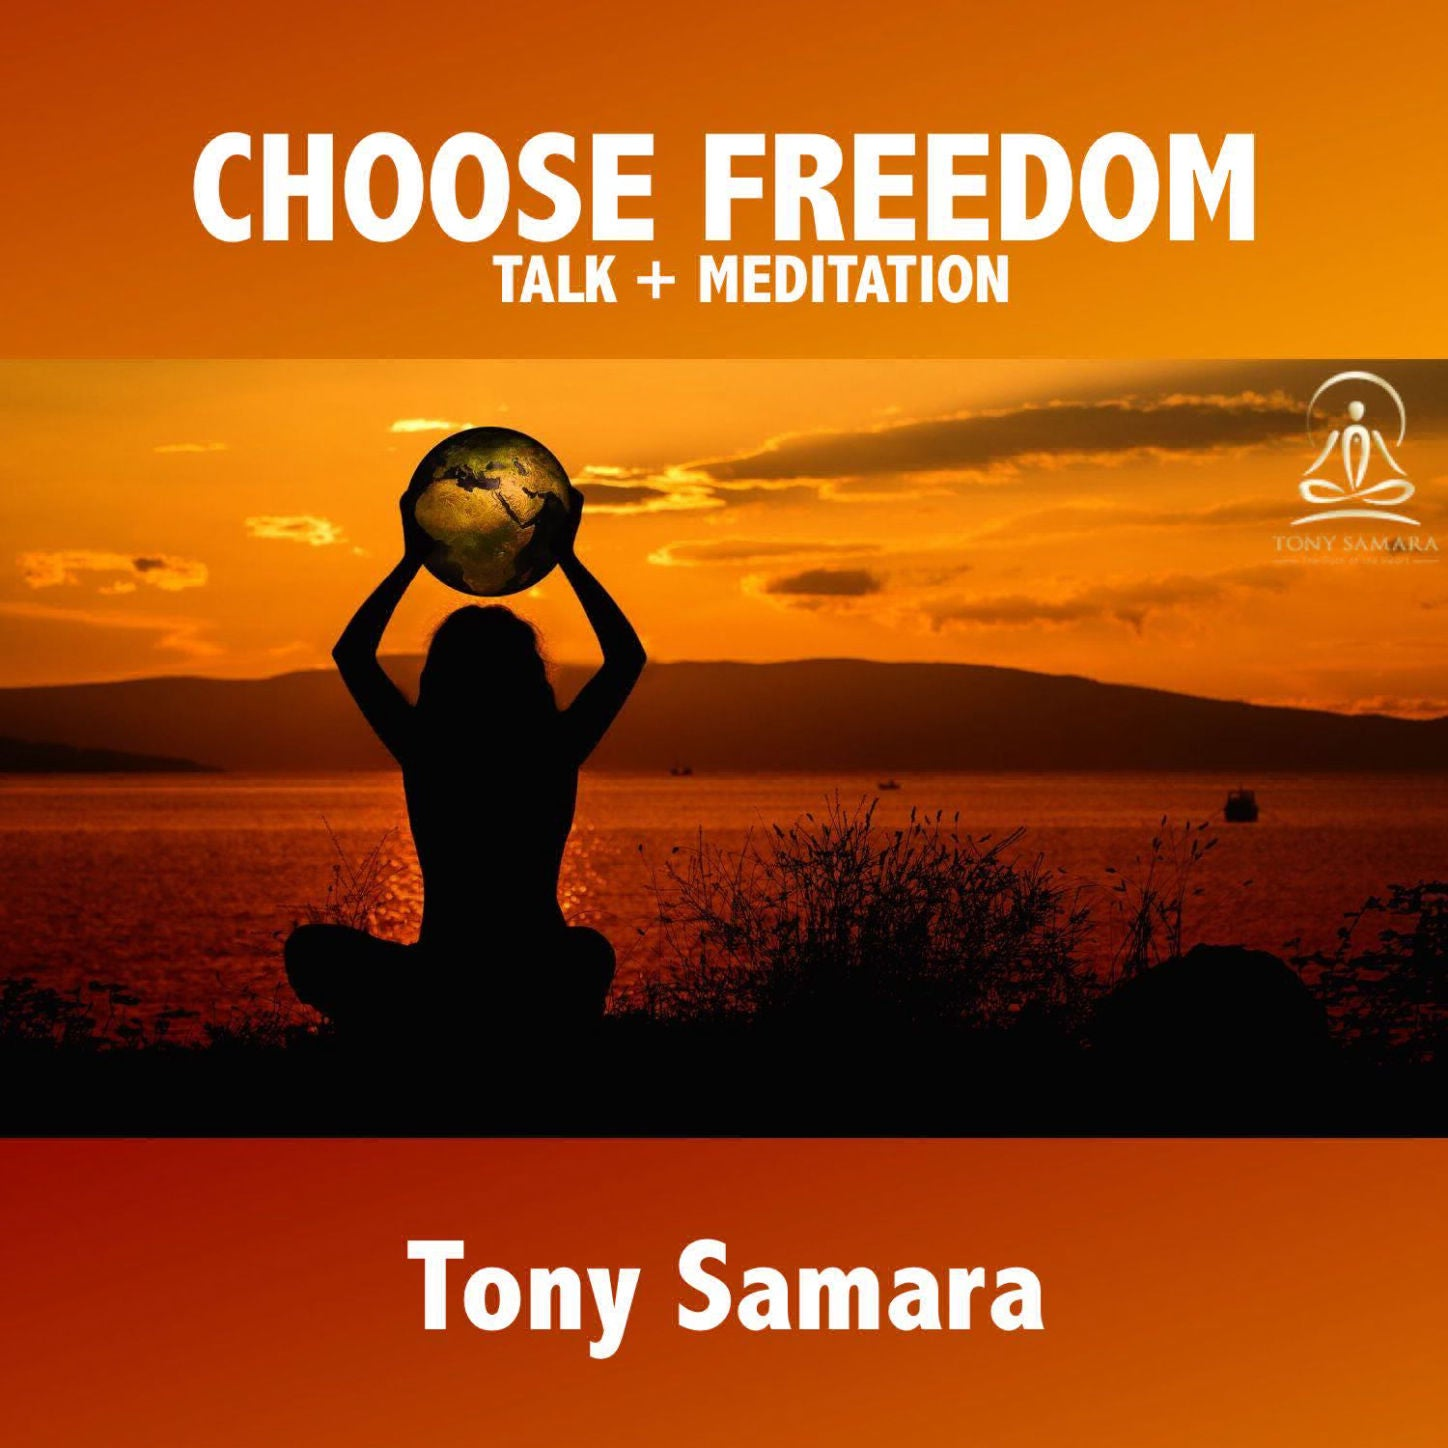 Choose Freedom Meditation + Talk - Tony Samara Meditation